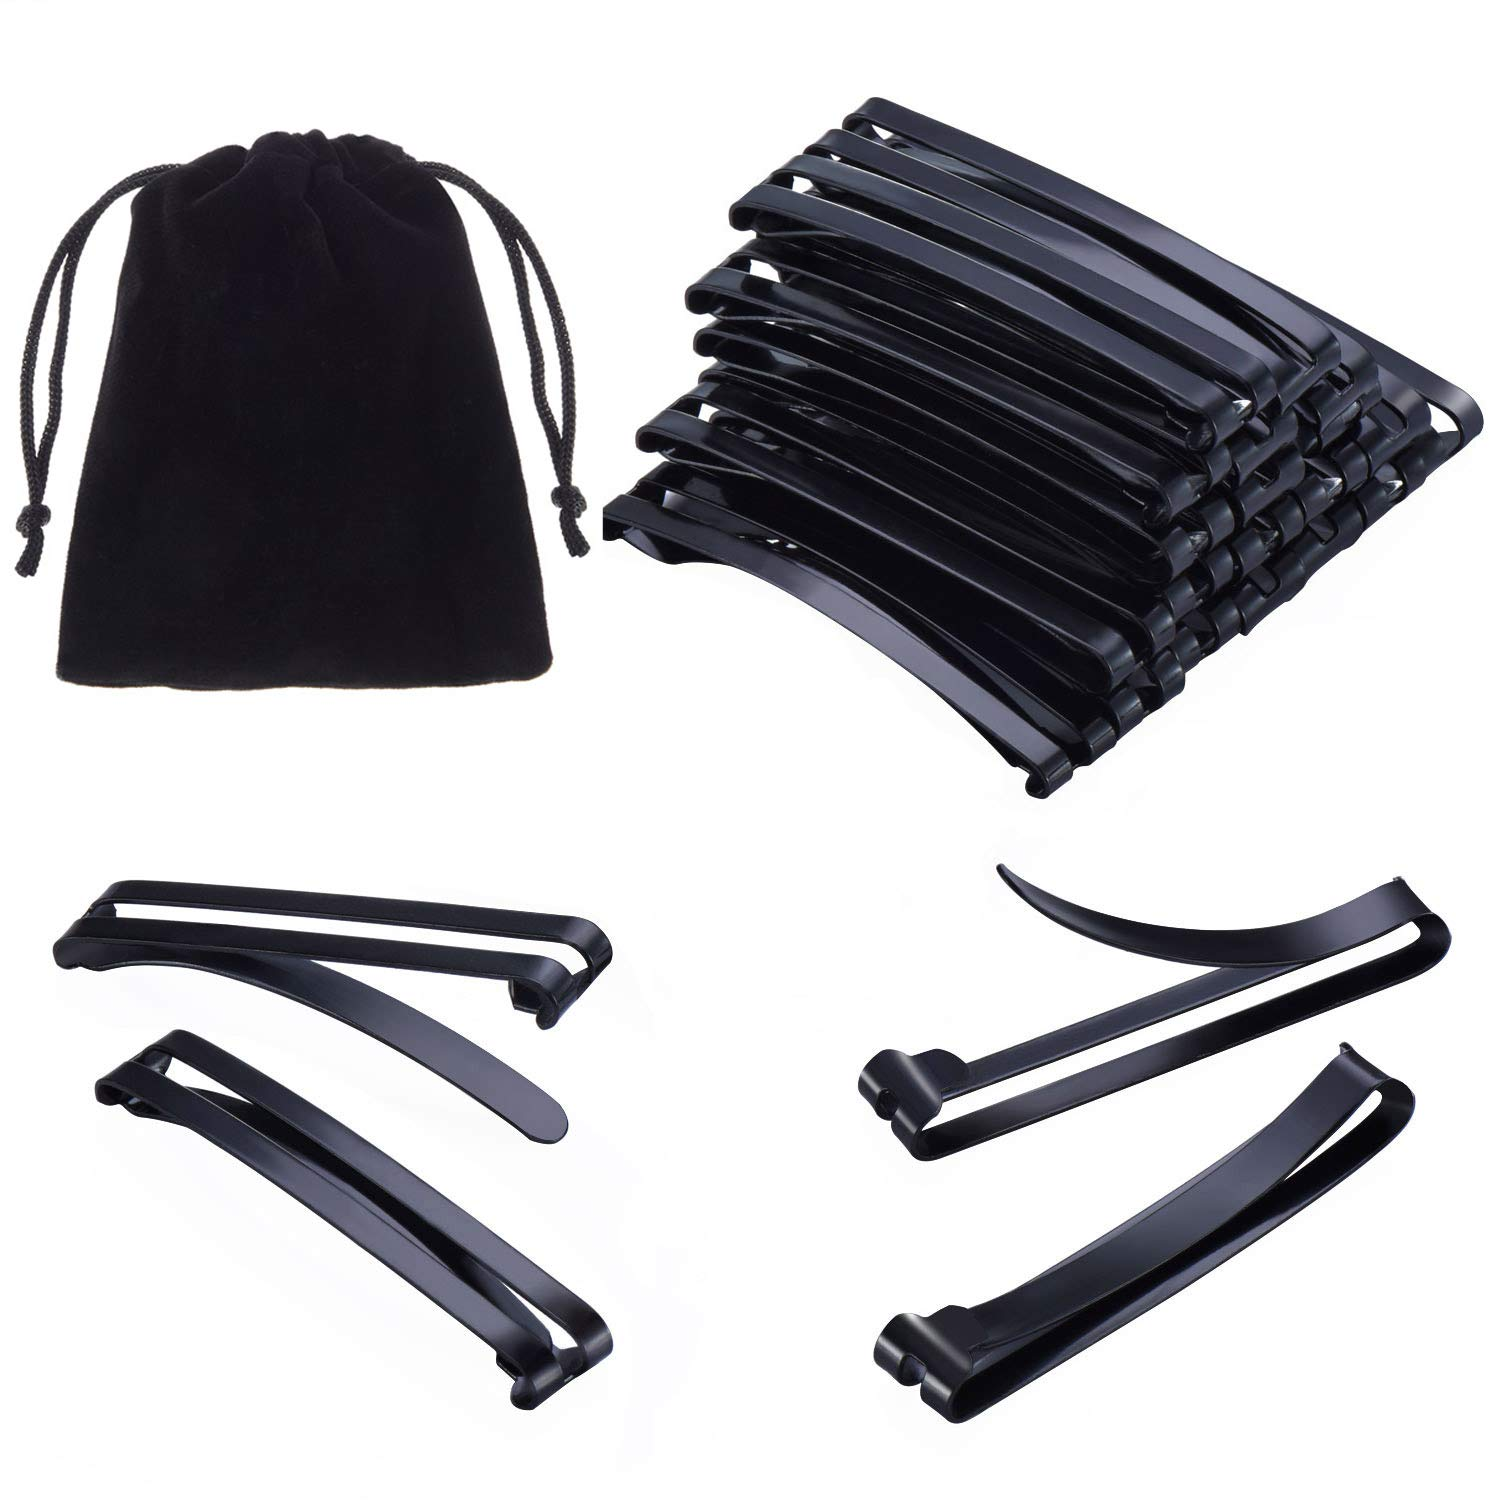 Fanrel Pack of 24 Metal Hair Barrettes Clips No-slip Grip Stay Tight Barrettes for Girls and Women, Black : Beauty